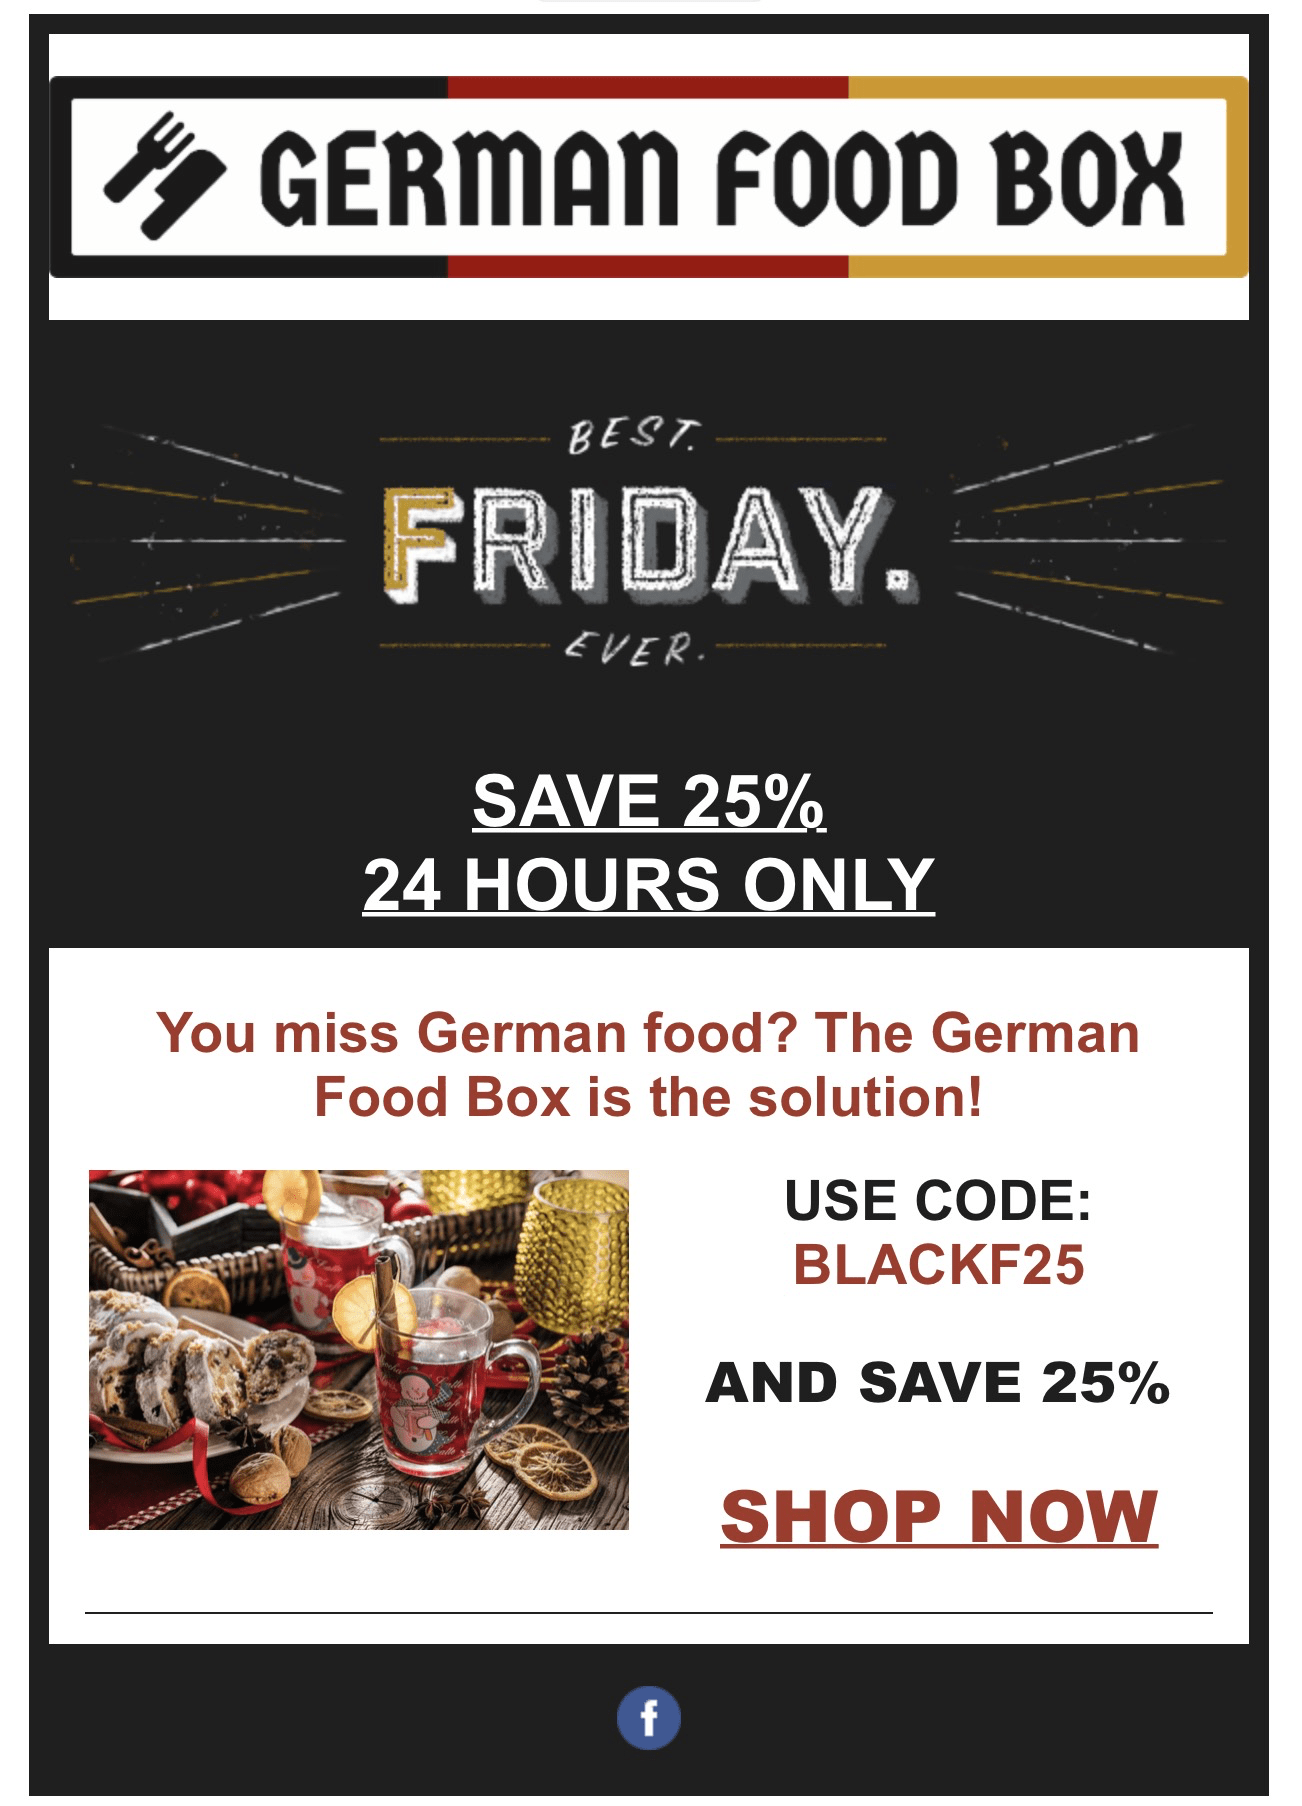 Black Friday Germany German Food Box Black Friday Coupon Save 25 Hello